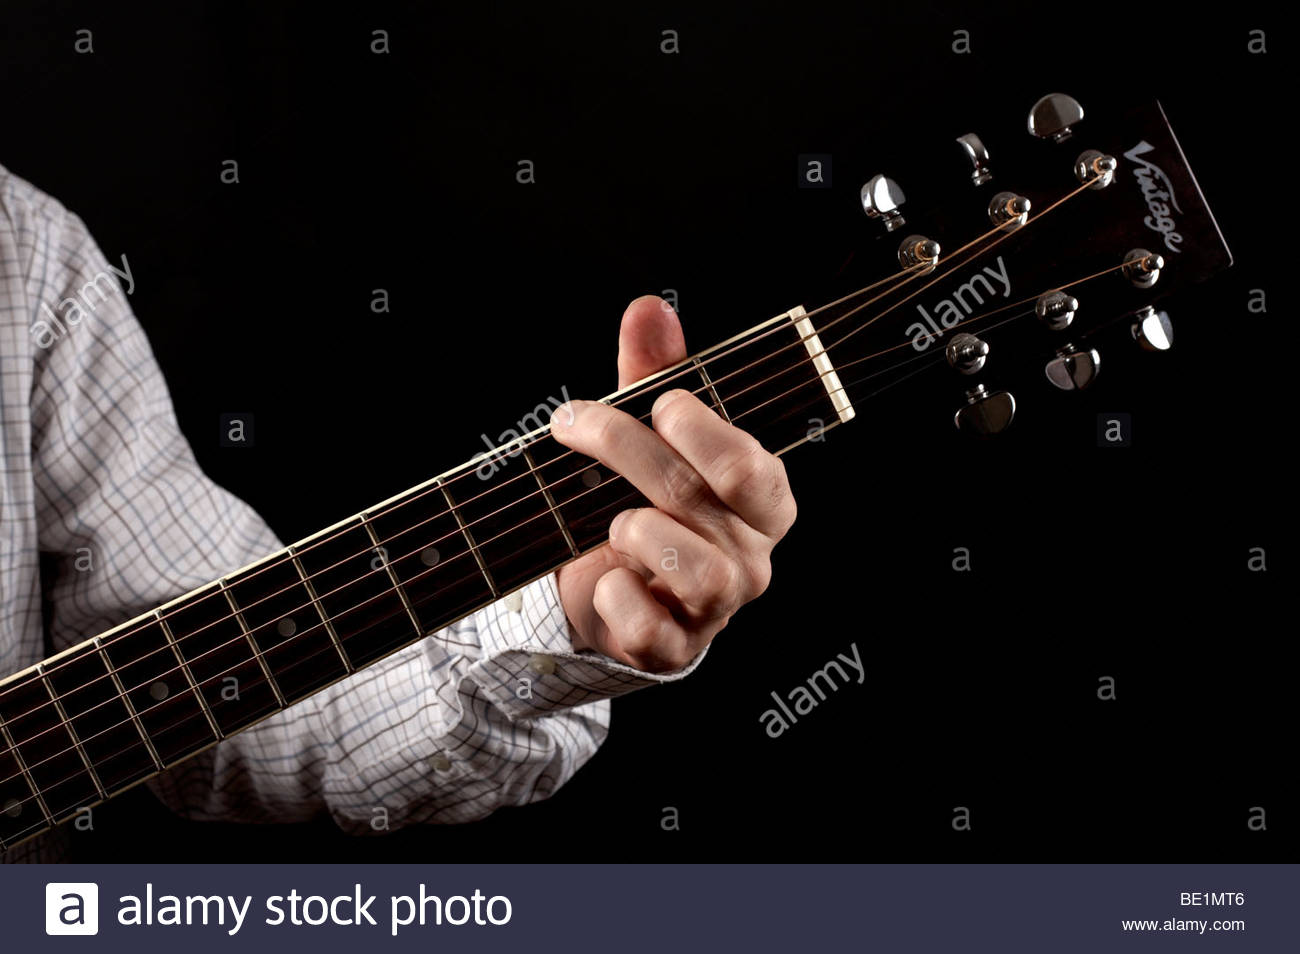 G String Man Stock Photos G String Man Stock Images Alamy